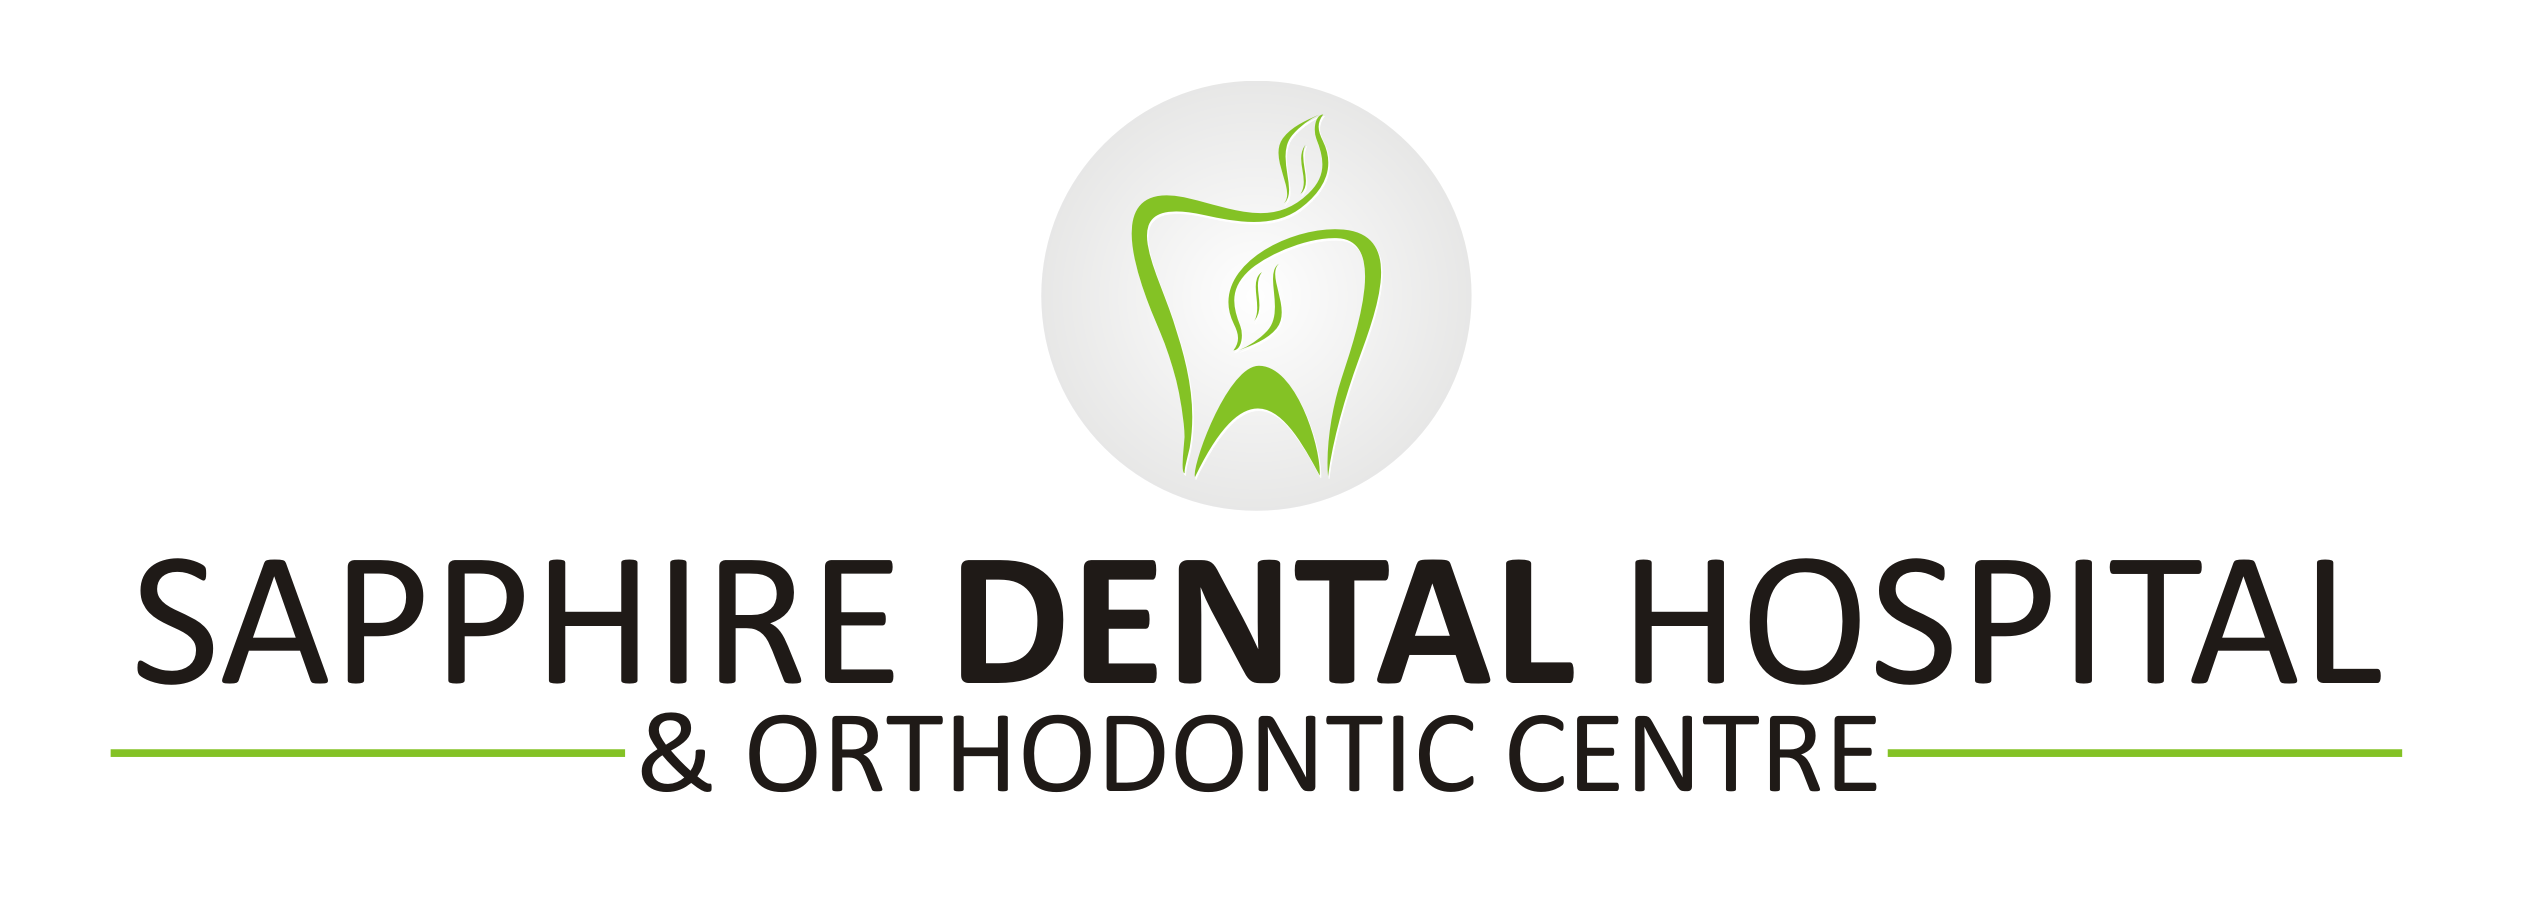 Sapphire Dental Hospital & Orthodontic Centre